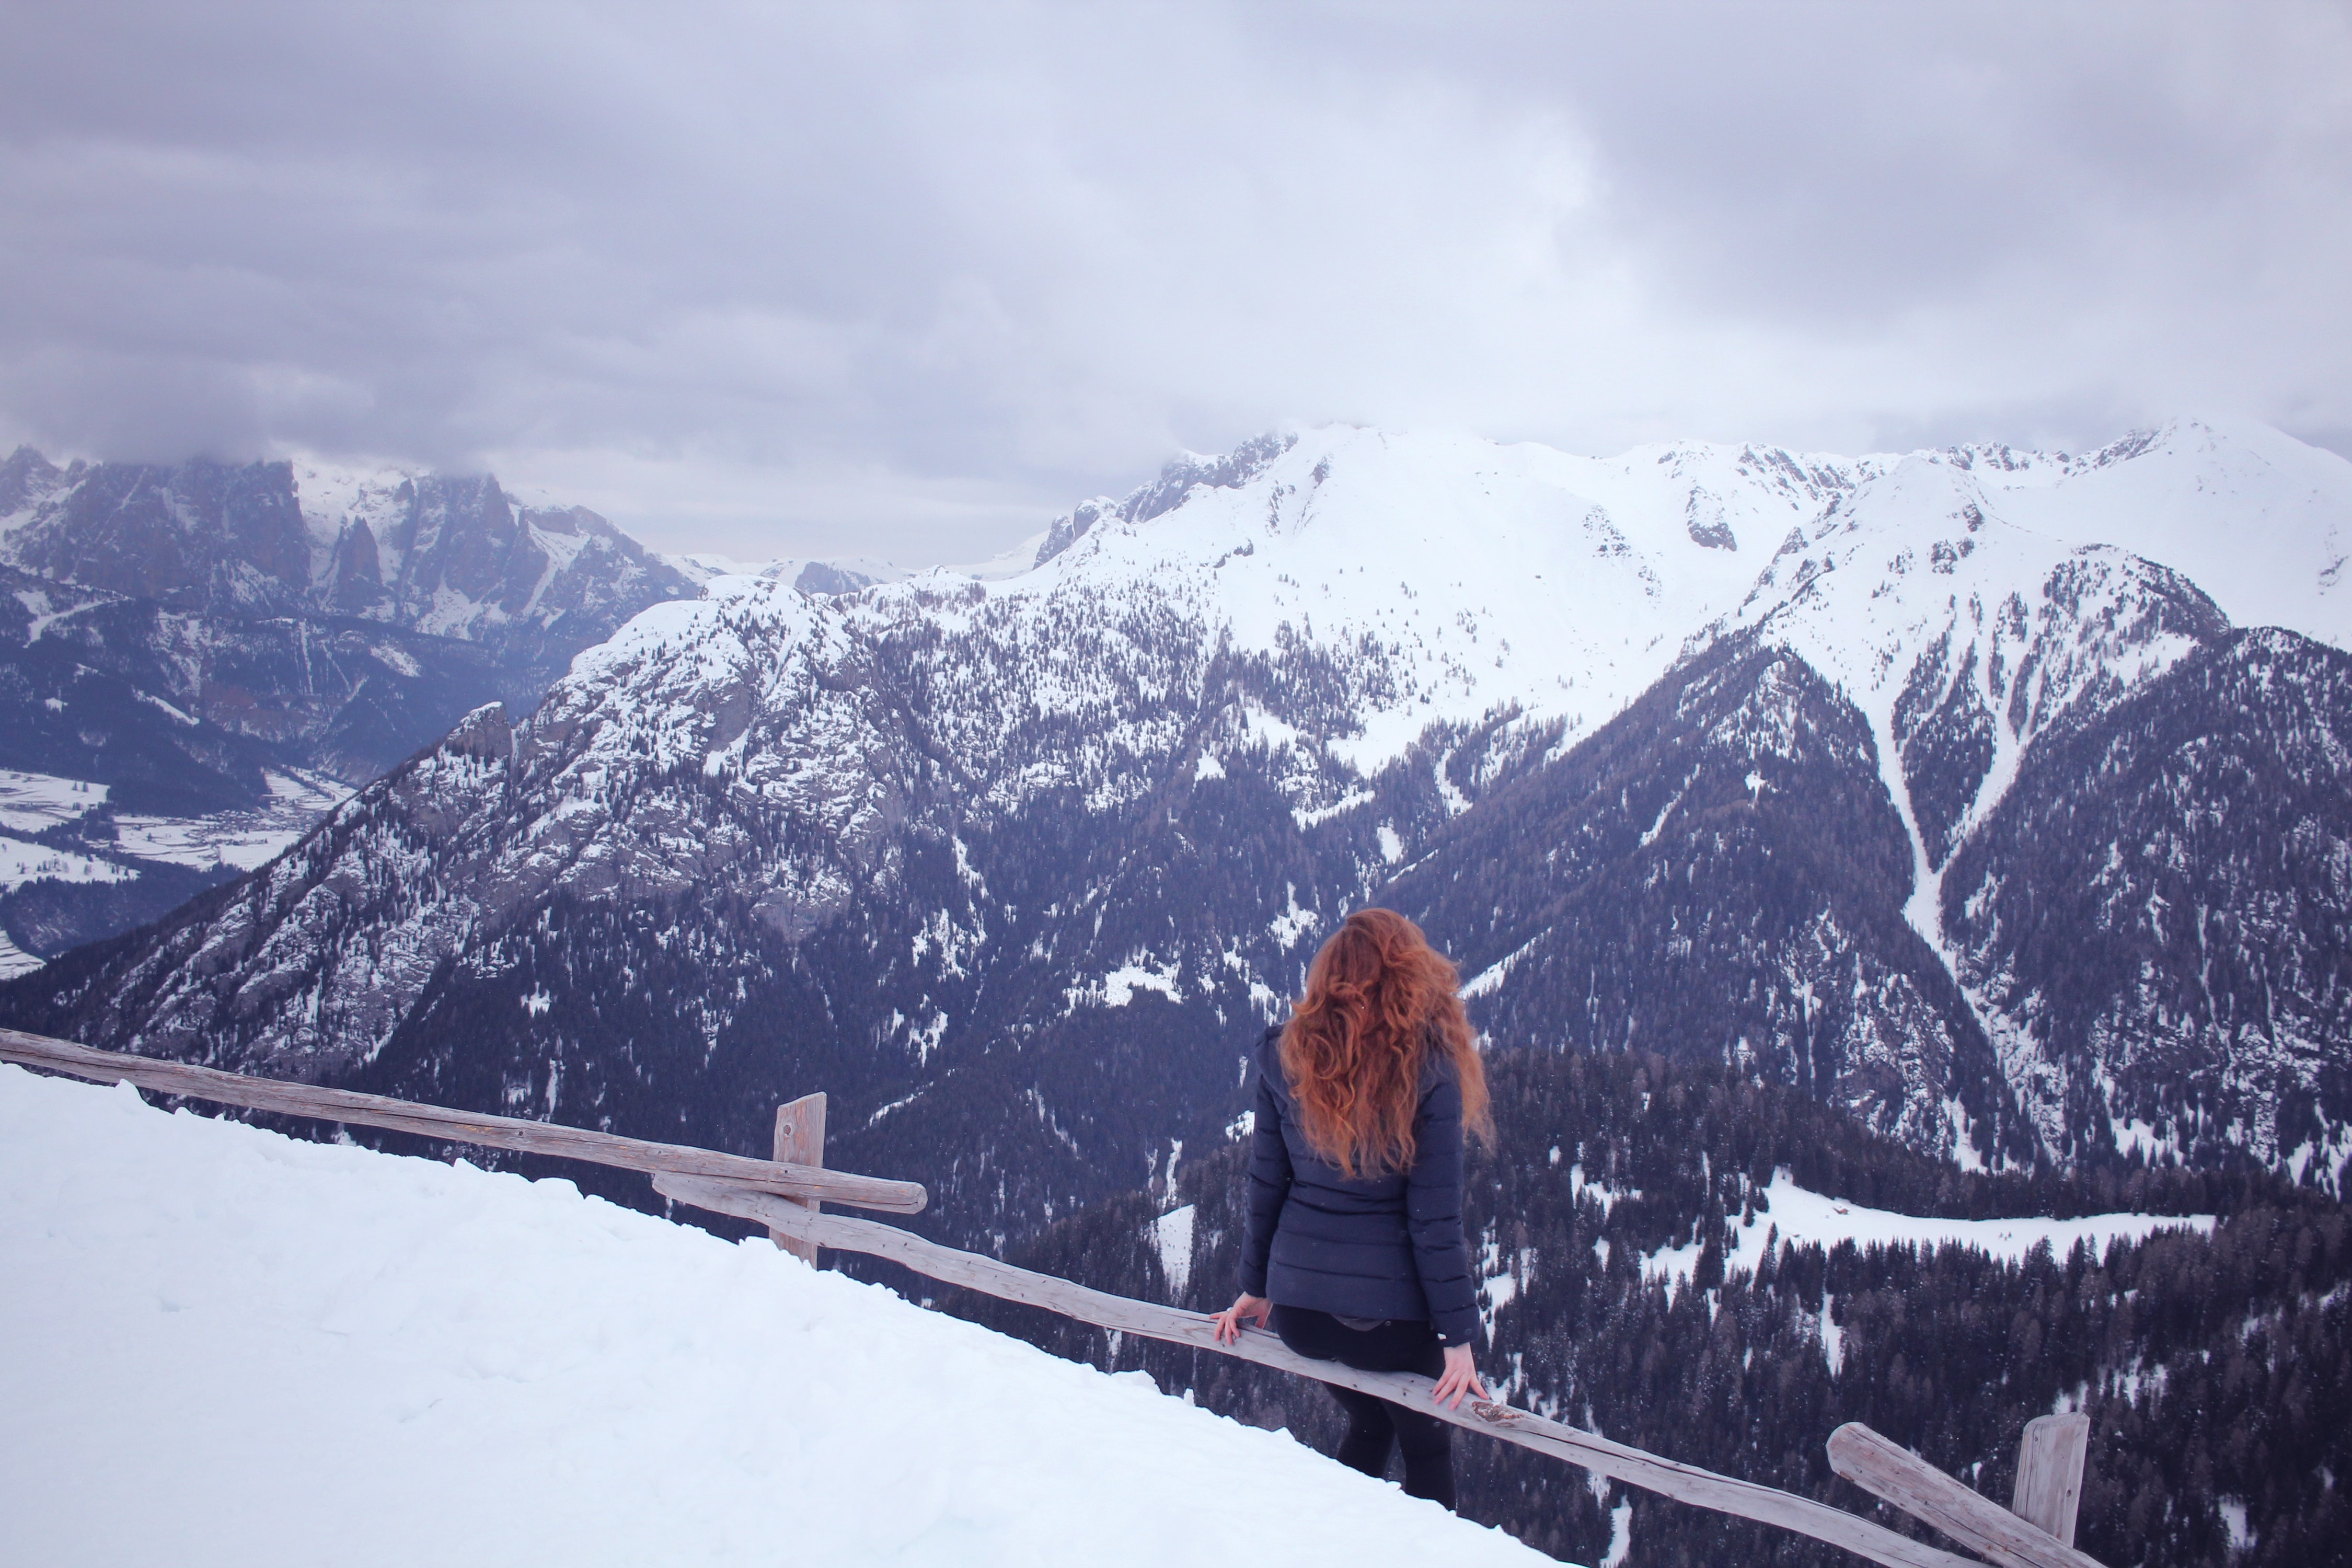 A girl with red hair sits on a fence and is looking at the Dolomite Mountains